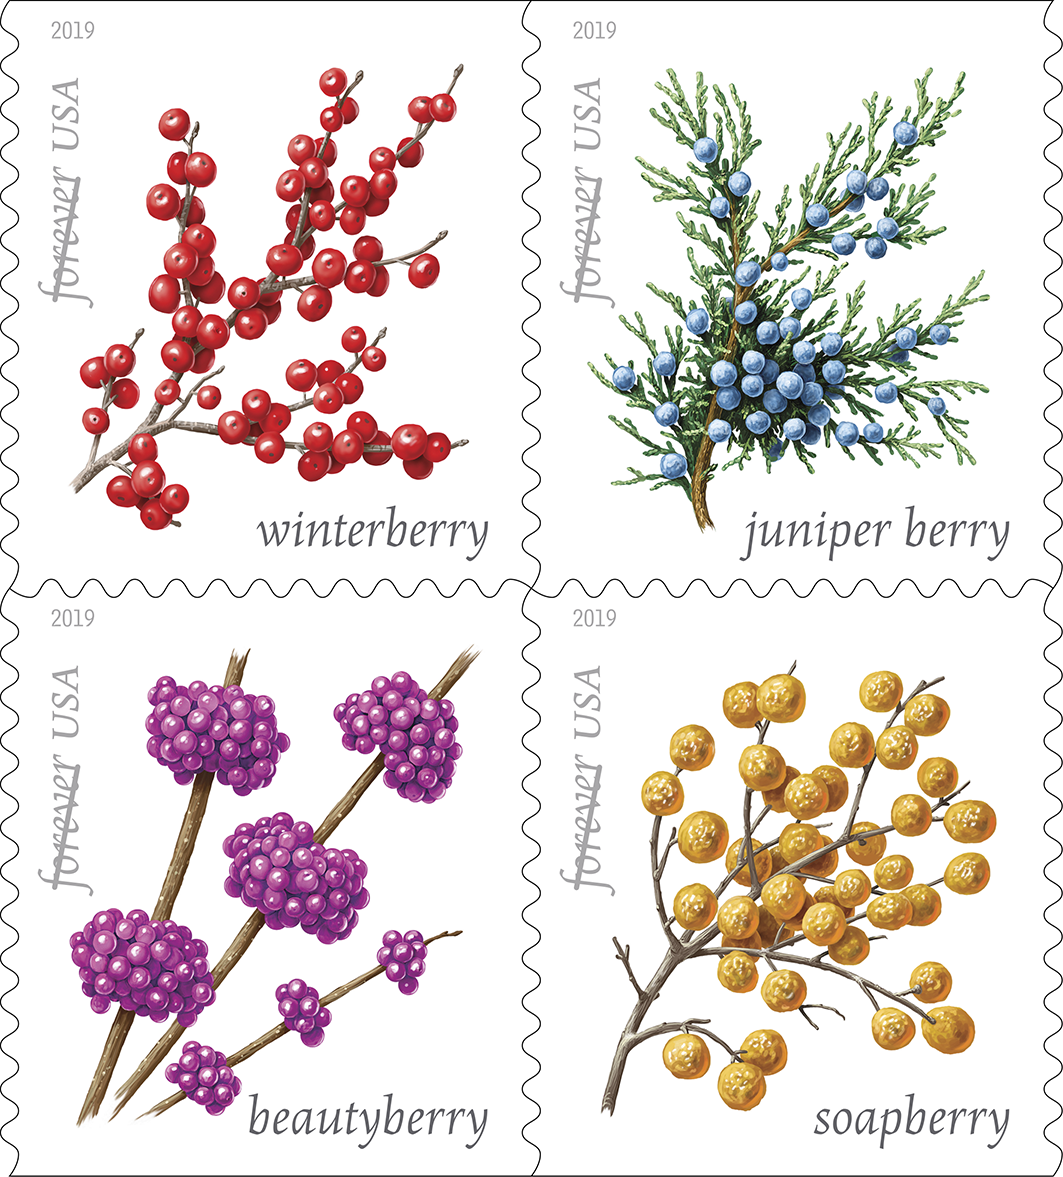 winter-berries-stamp-1